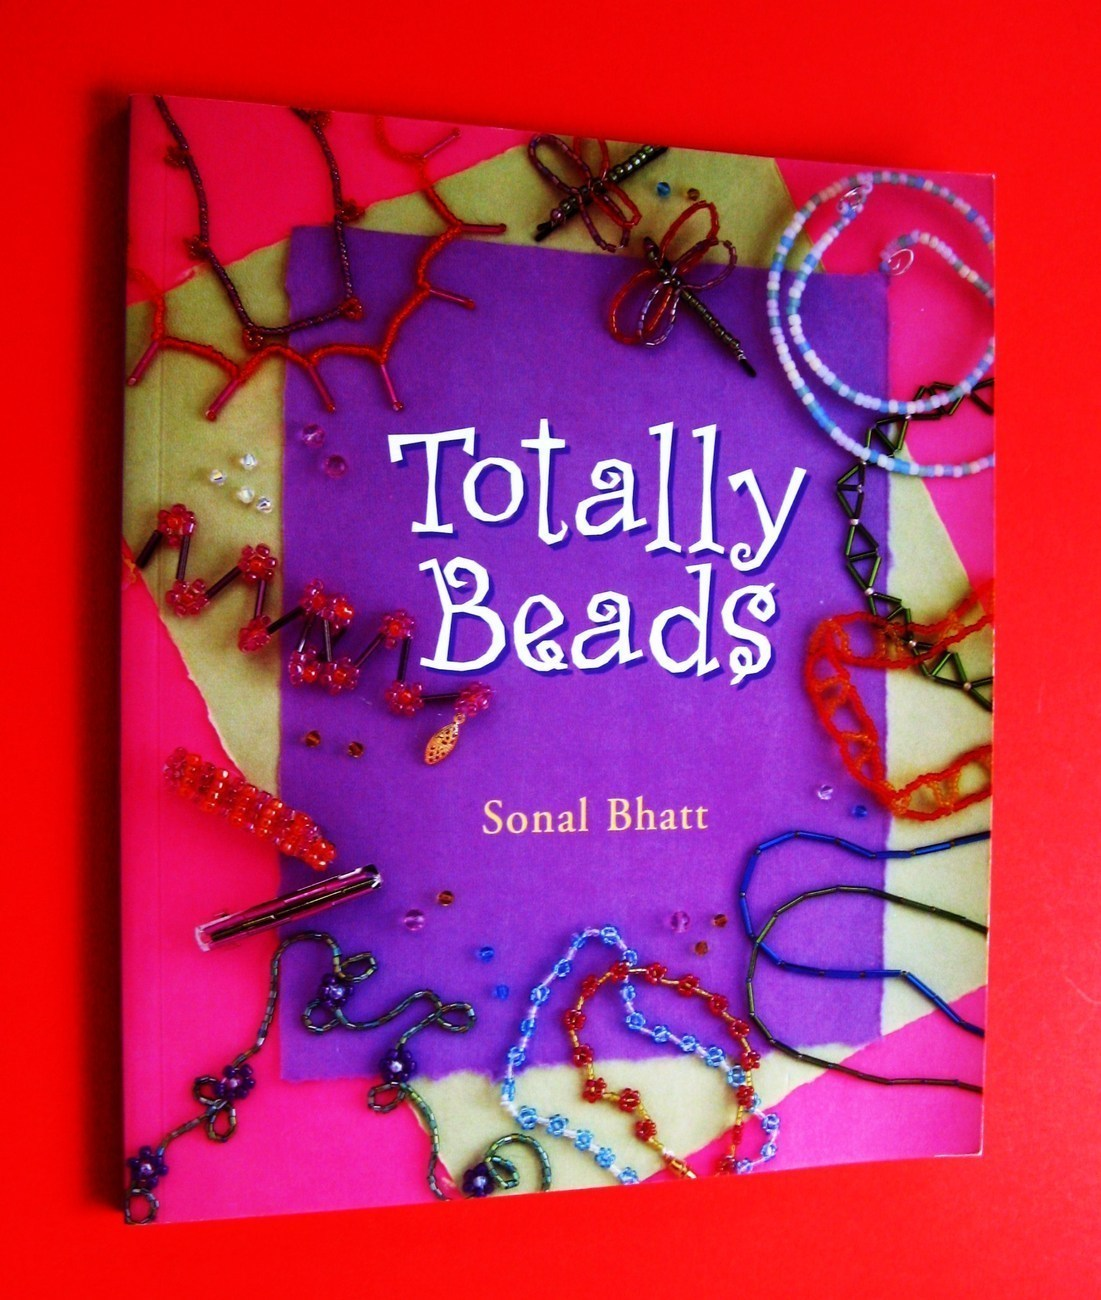 totally beads book jewelry craft hobbie creative illustrated how to guide book